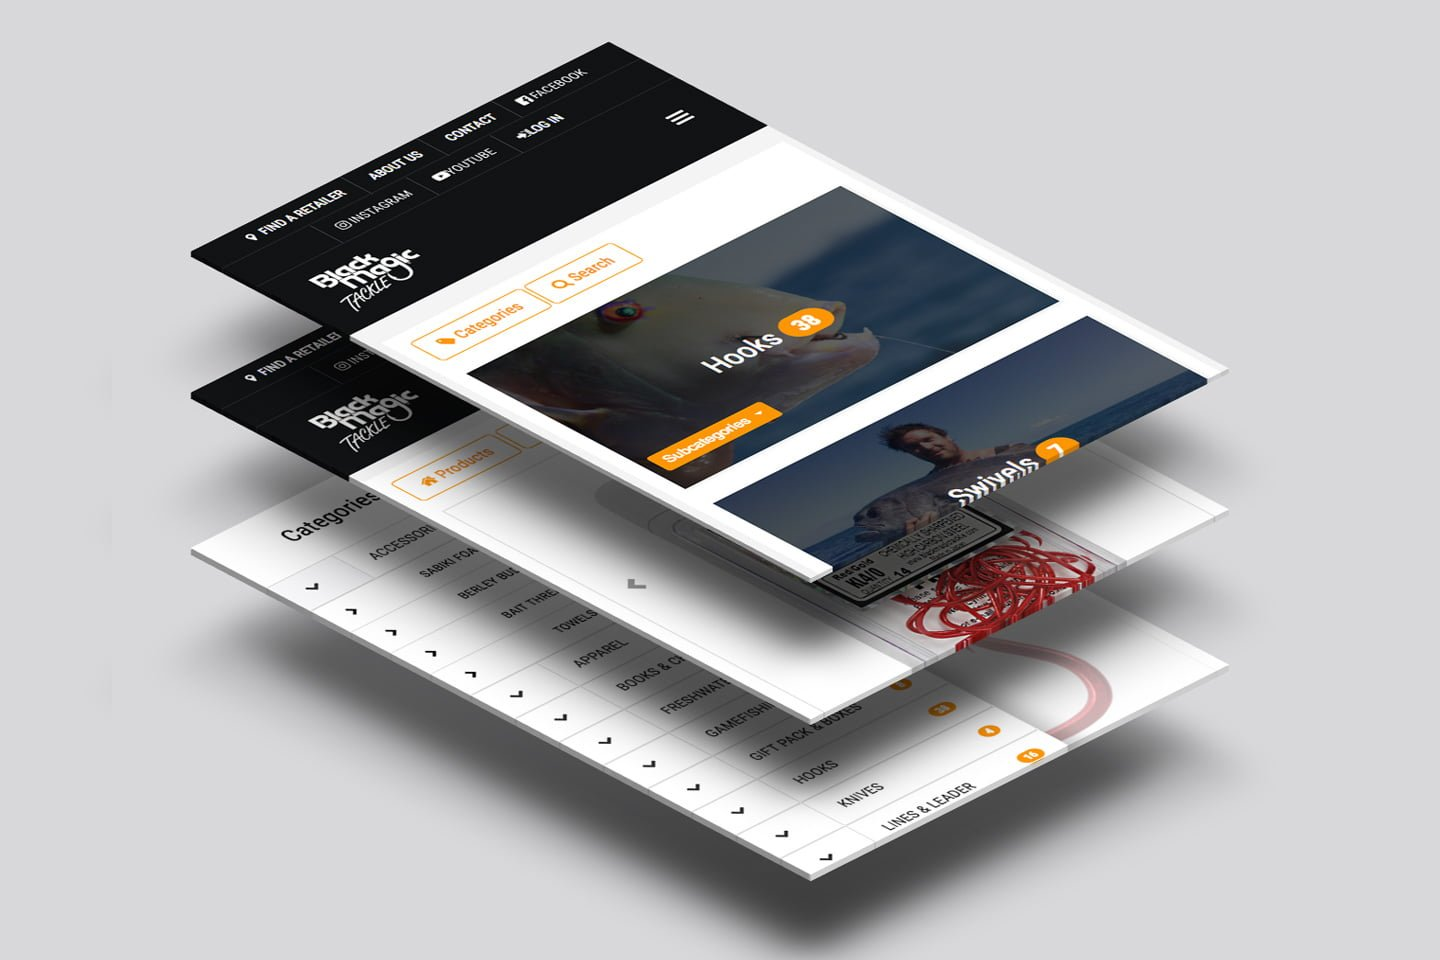 UX website design for Black Magic Fishing